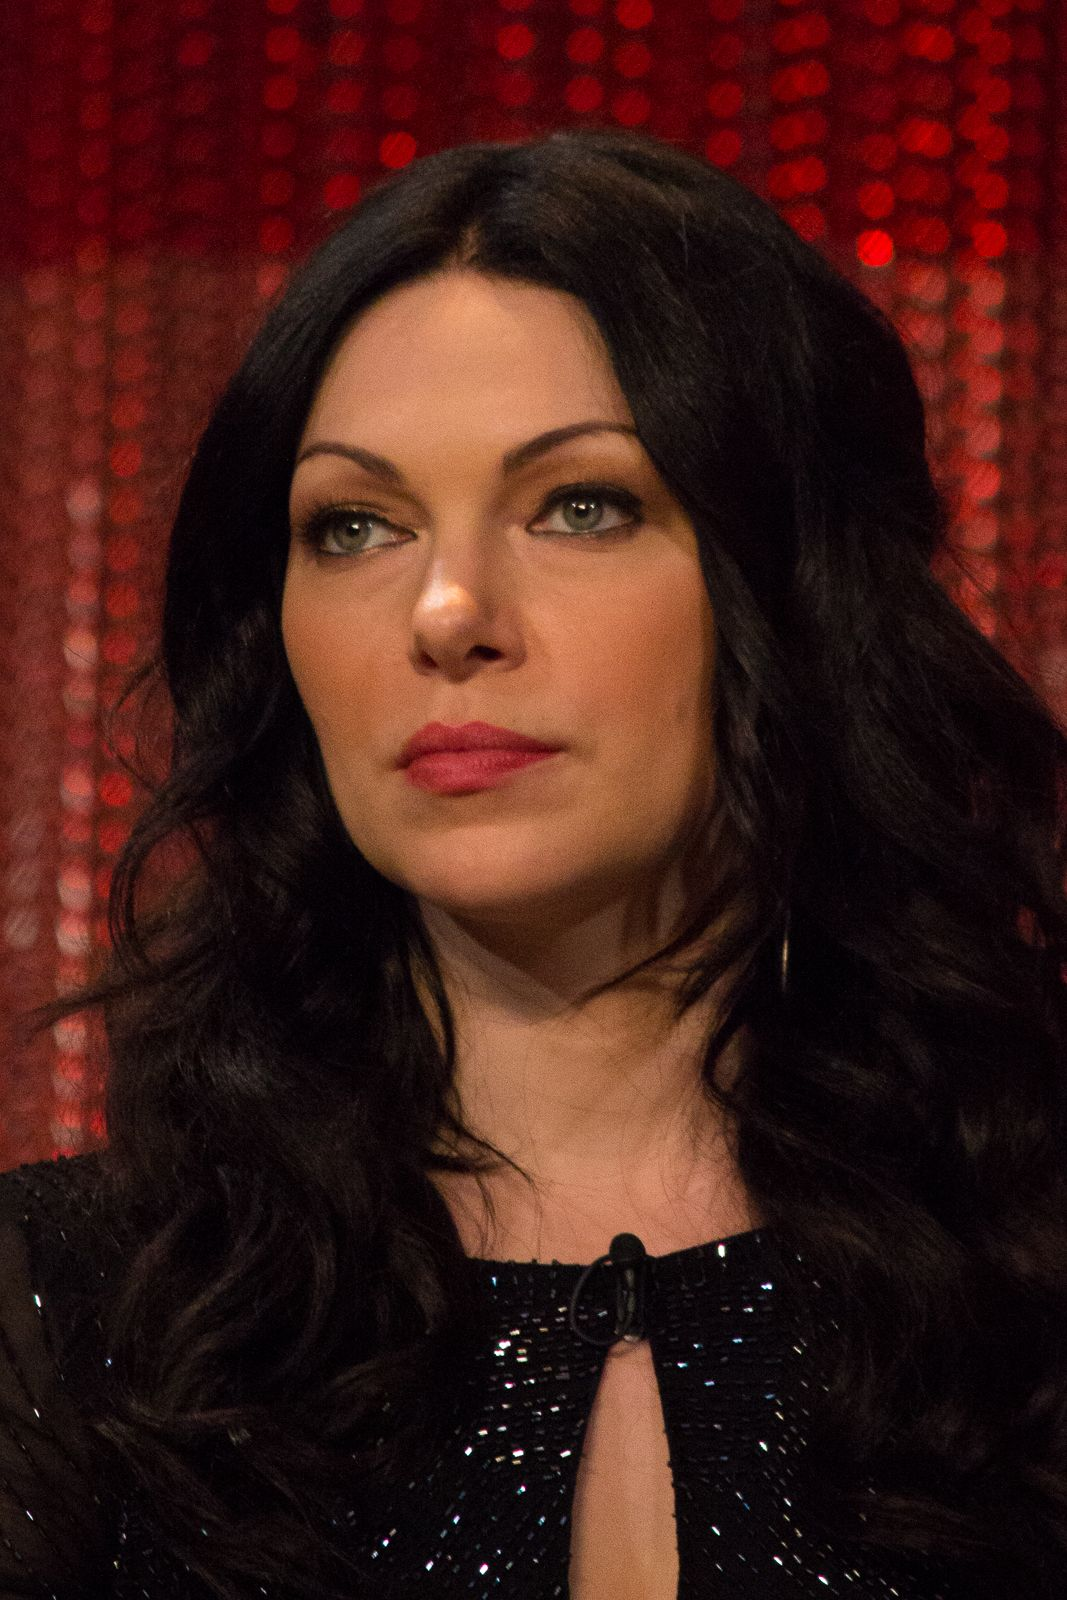 The actress Laura Prepon